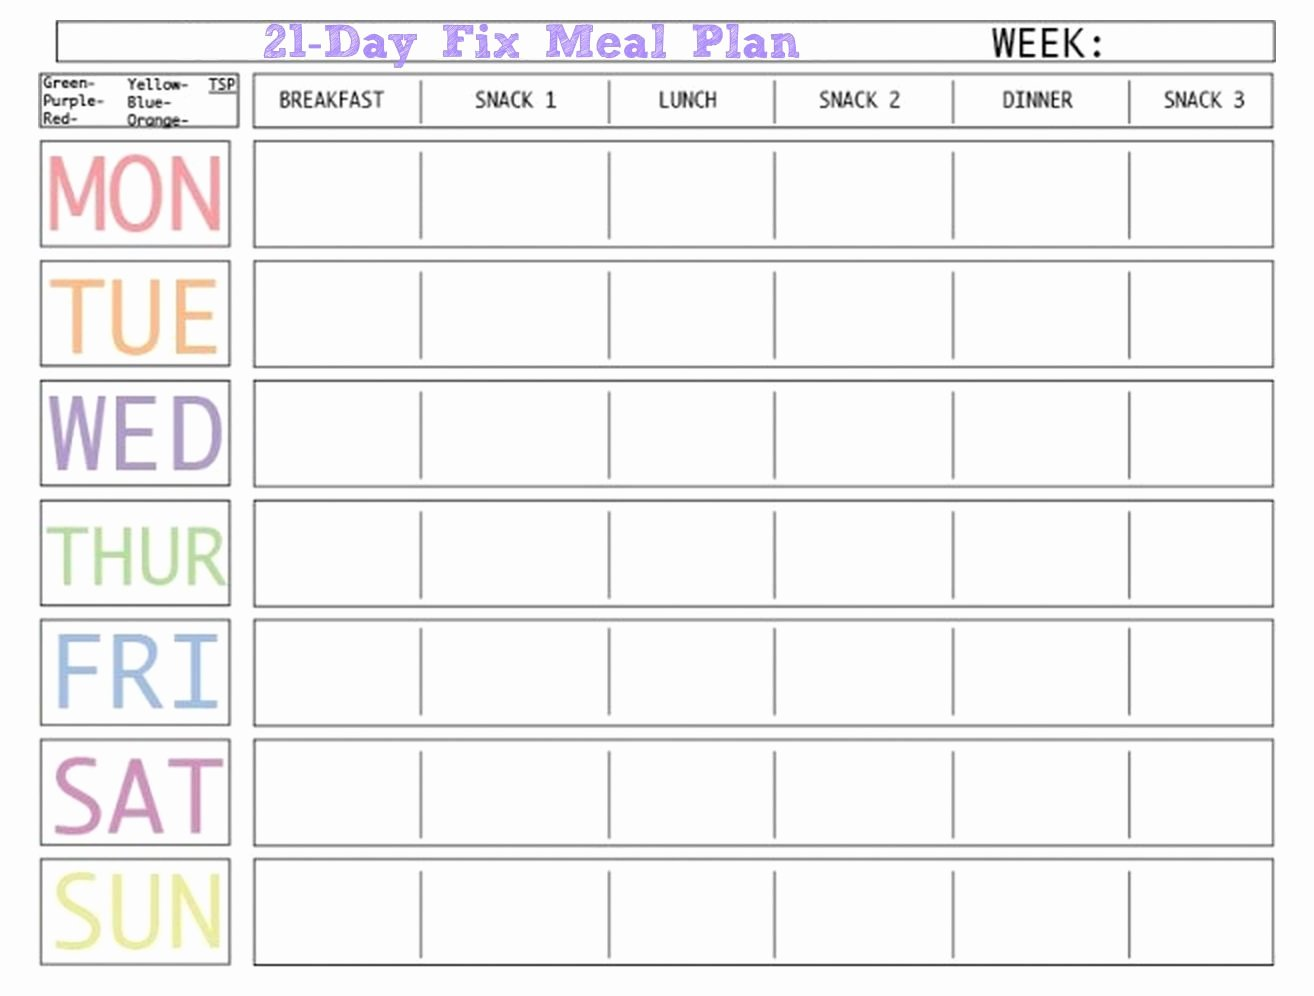 Weekly Meal Plan Template Awesome Here is A Blank Meal Plan Template You Can Use Diet Plan